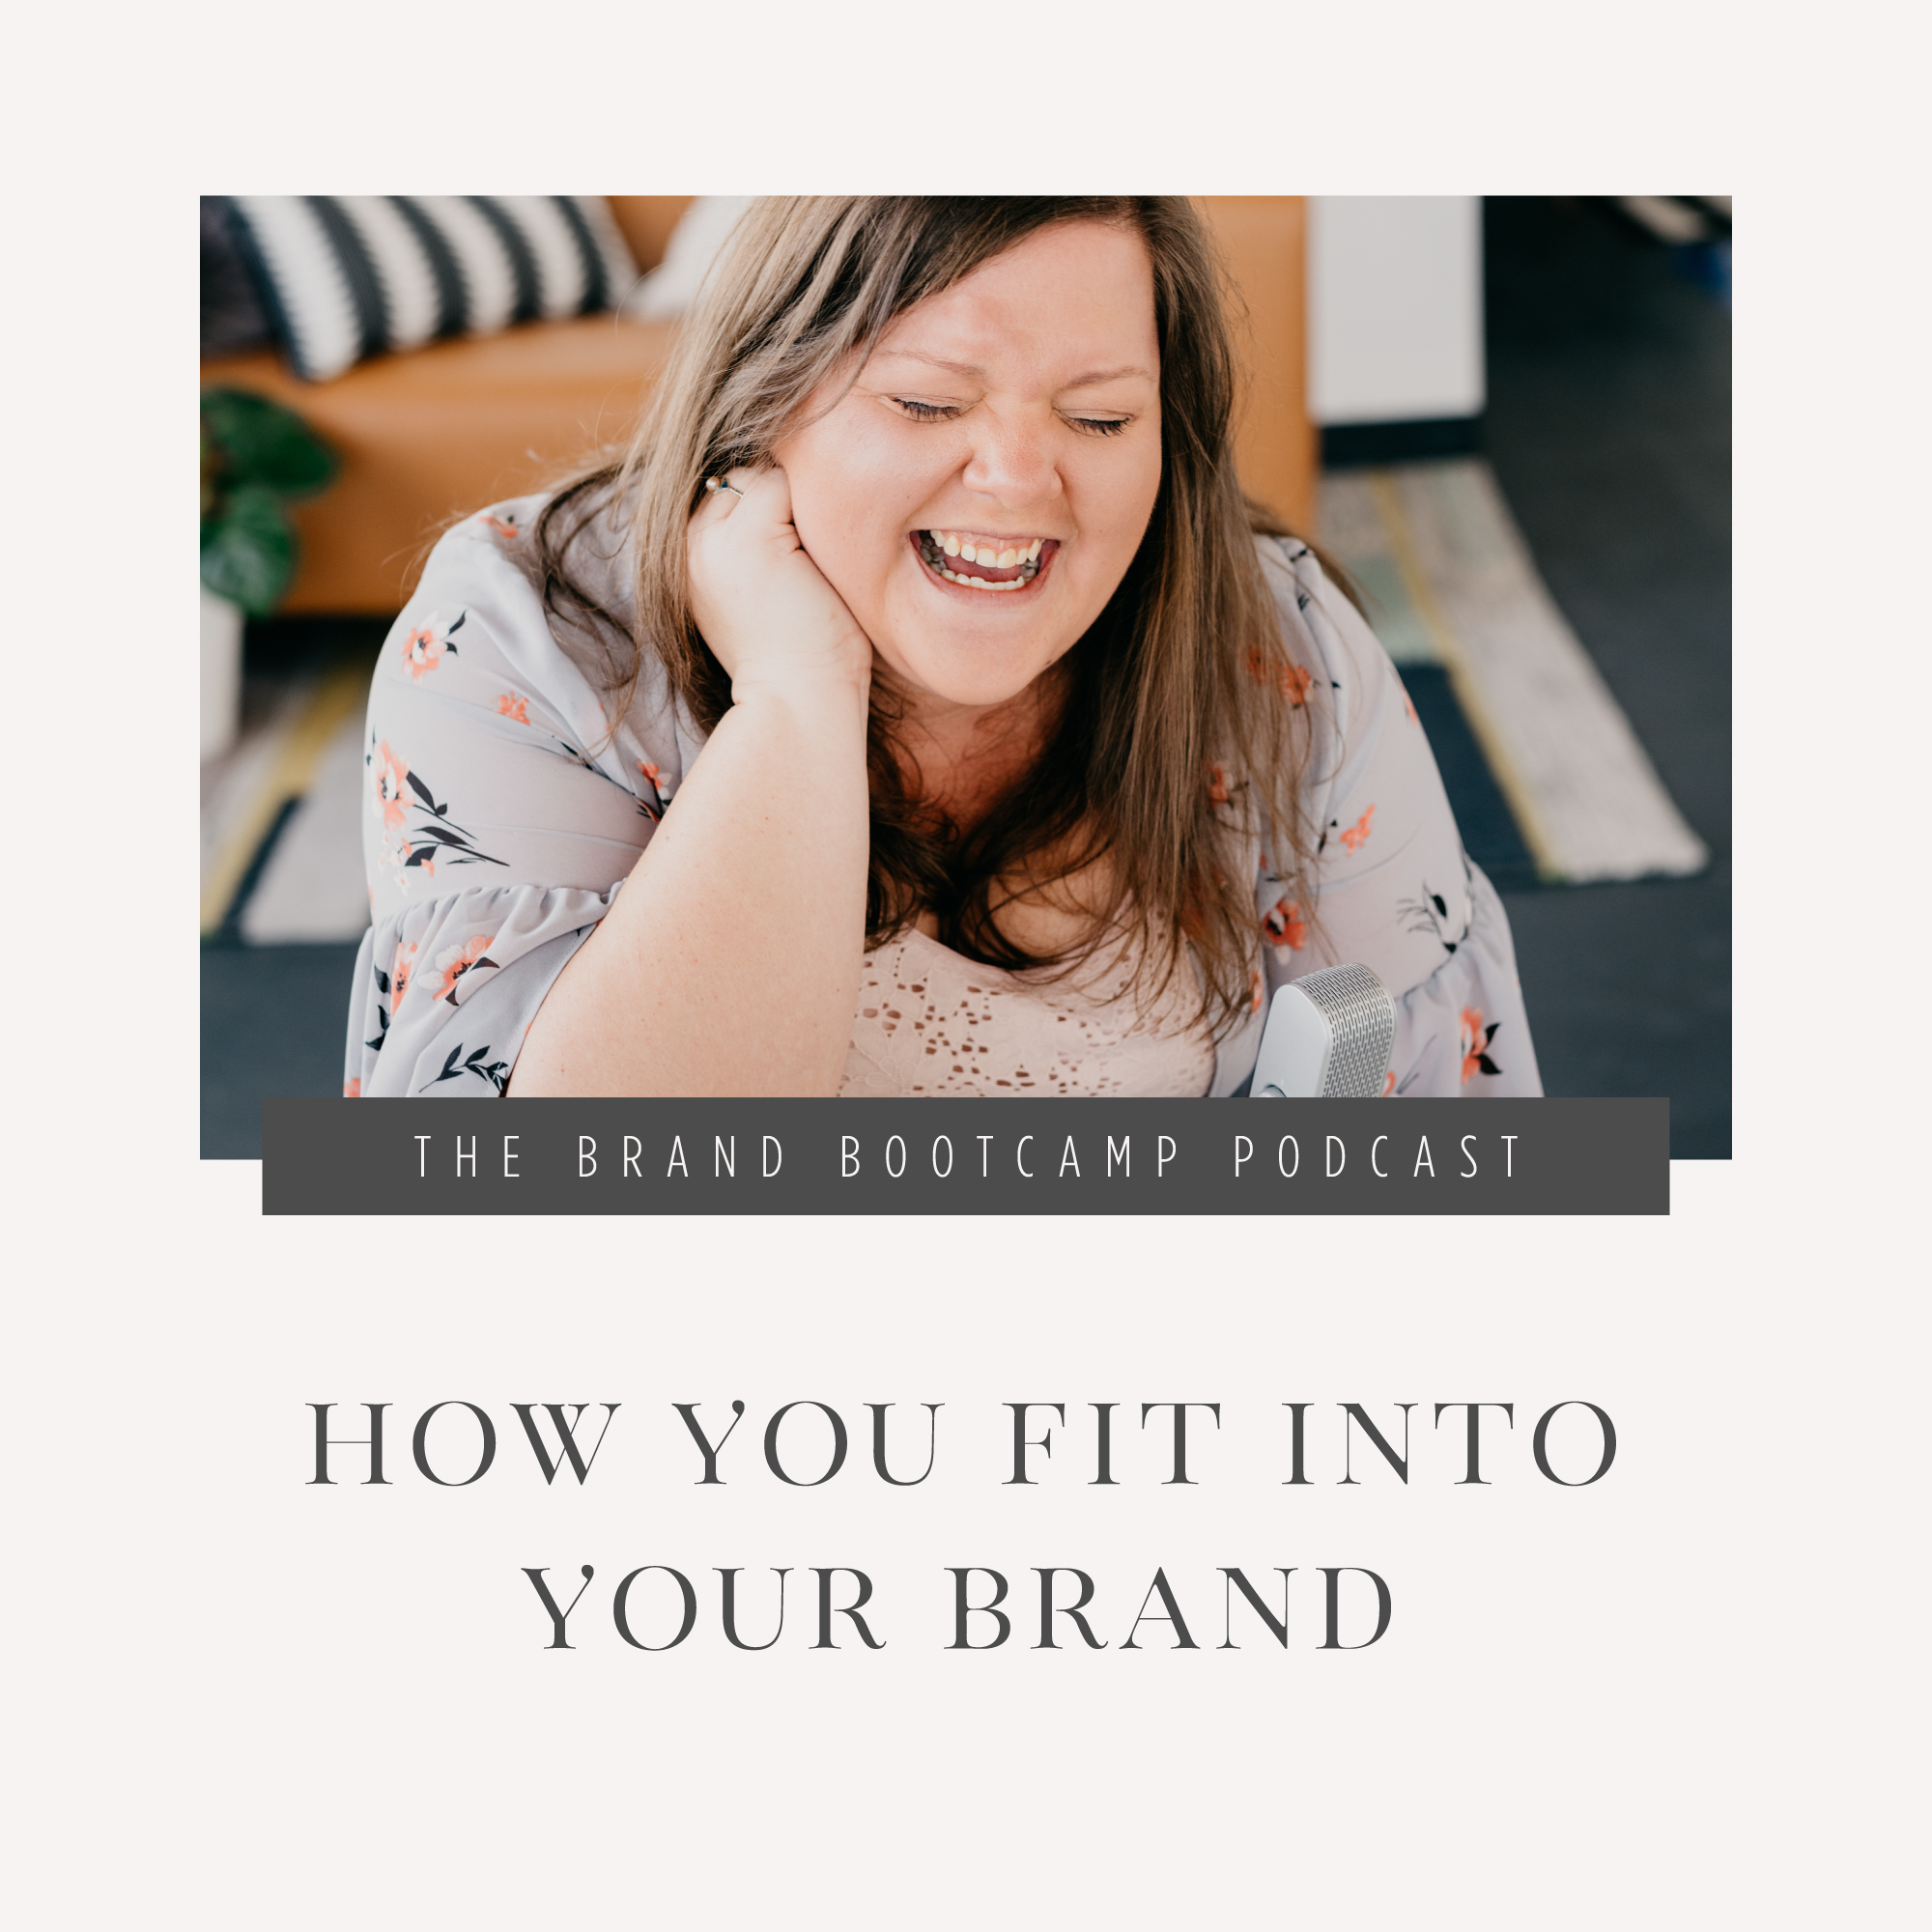 How You Fit Into Your Brand